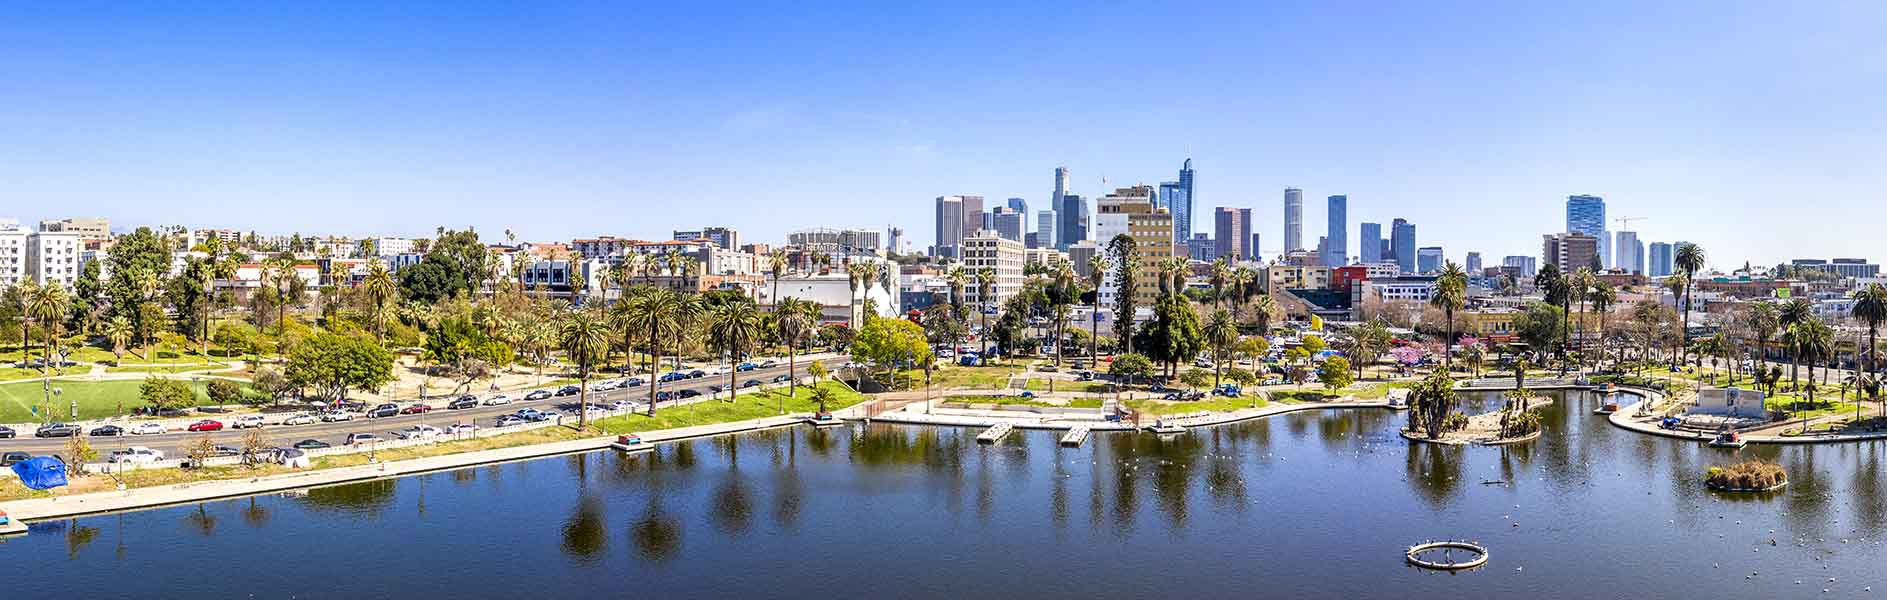 Los Angeles commercial cleaning services provider